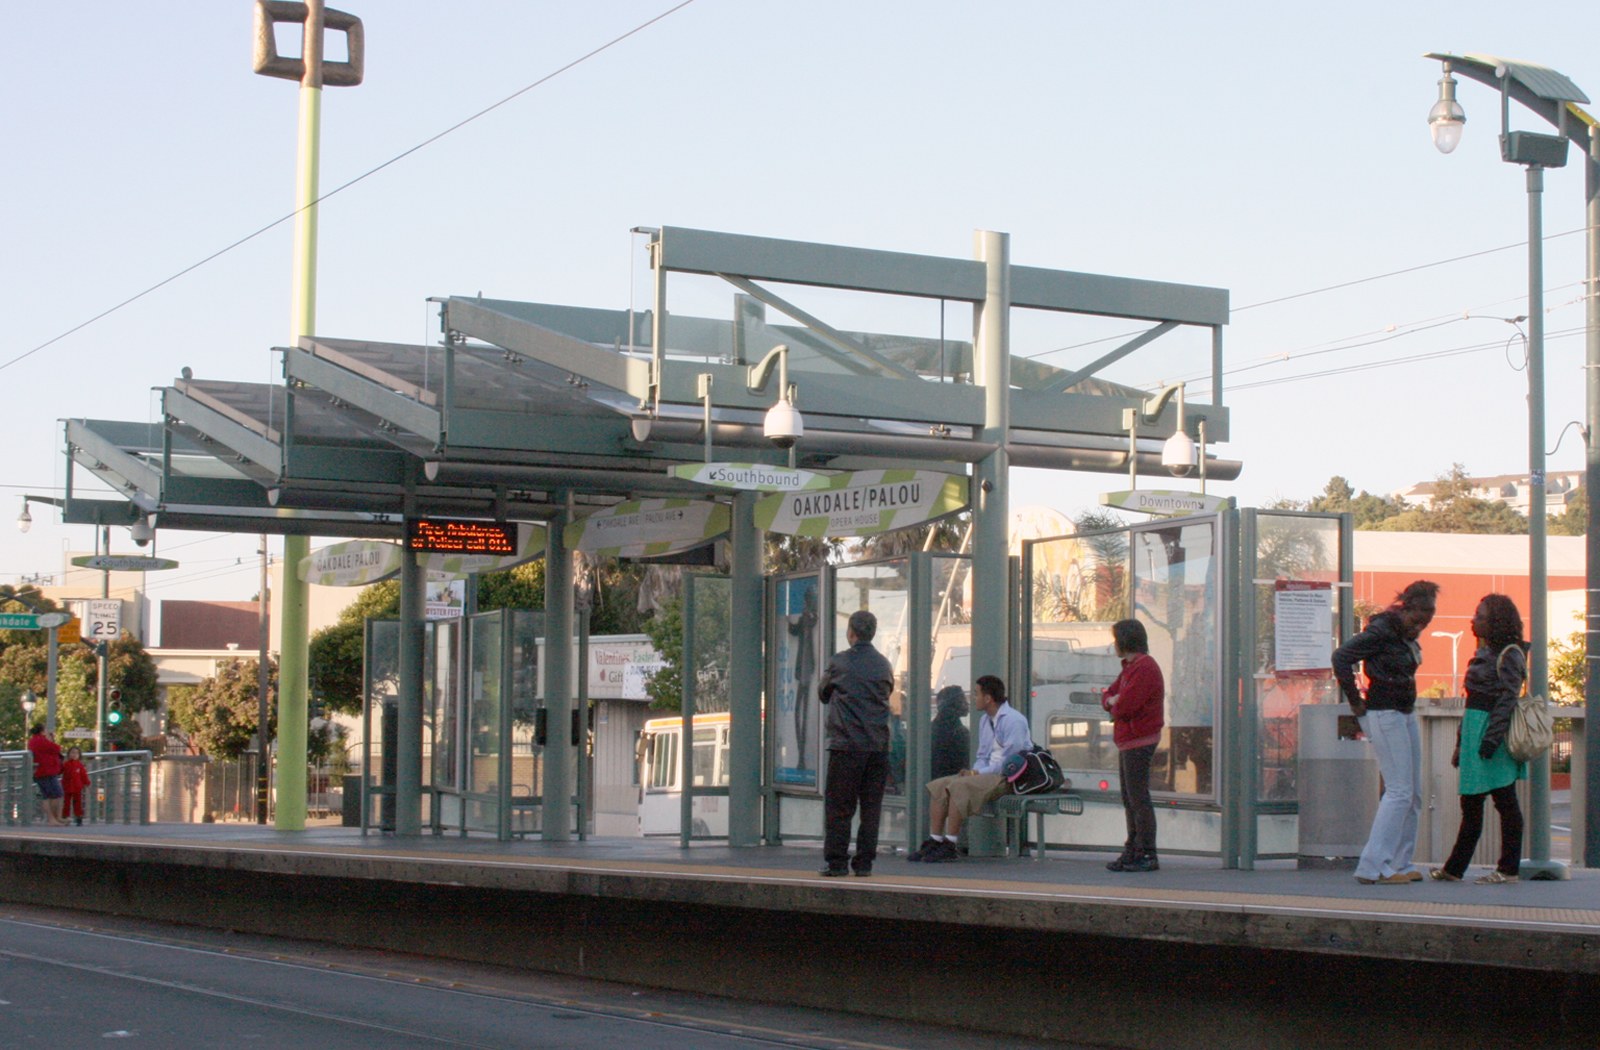 Riders wait for Muni at Third Street and Palou Avenue around 7:30 p.m.